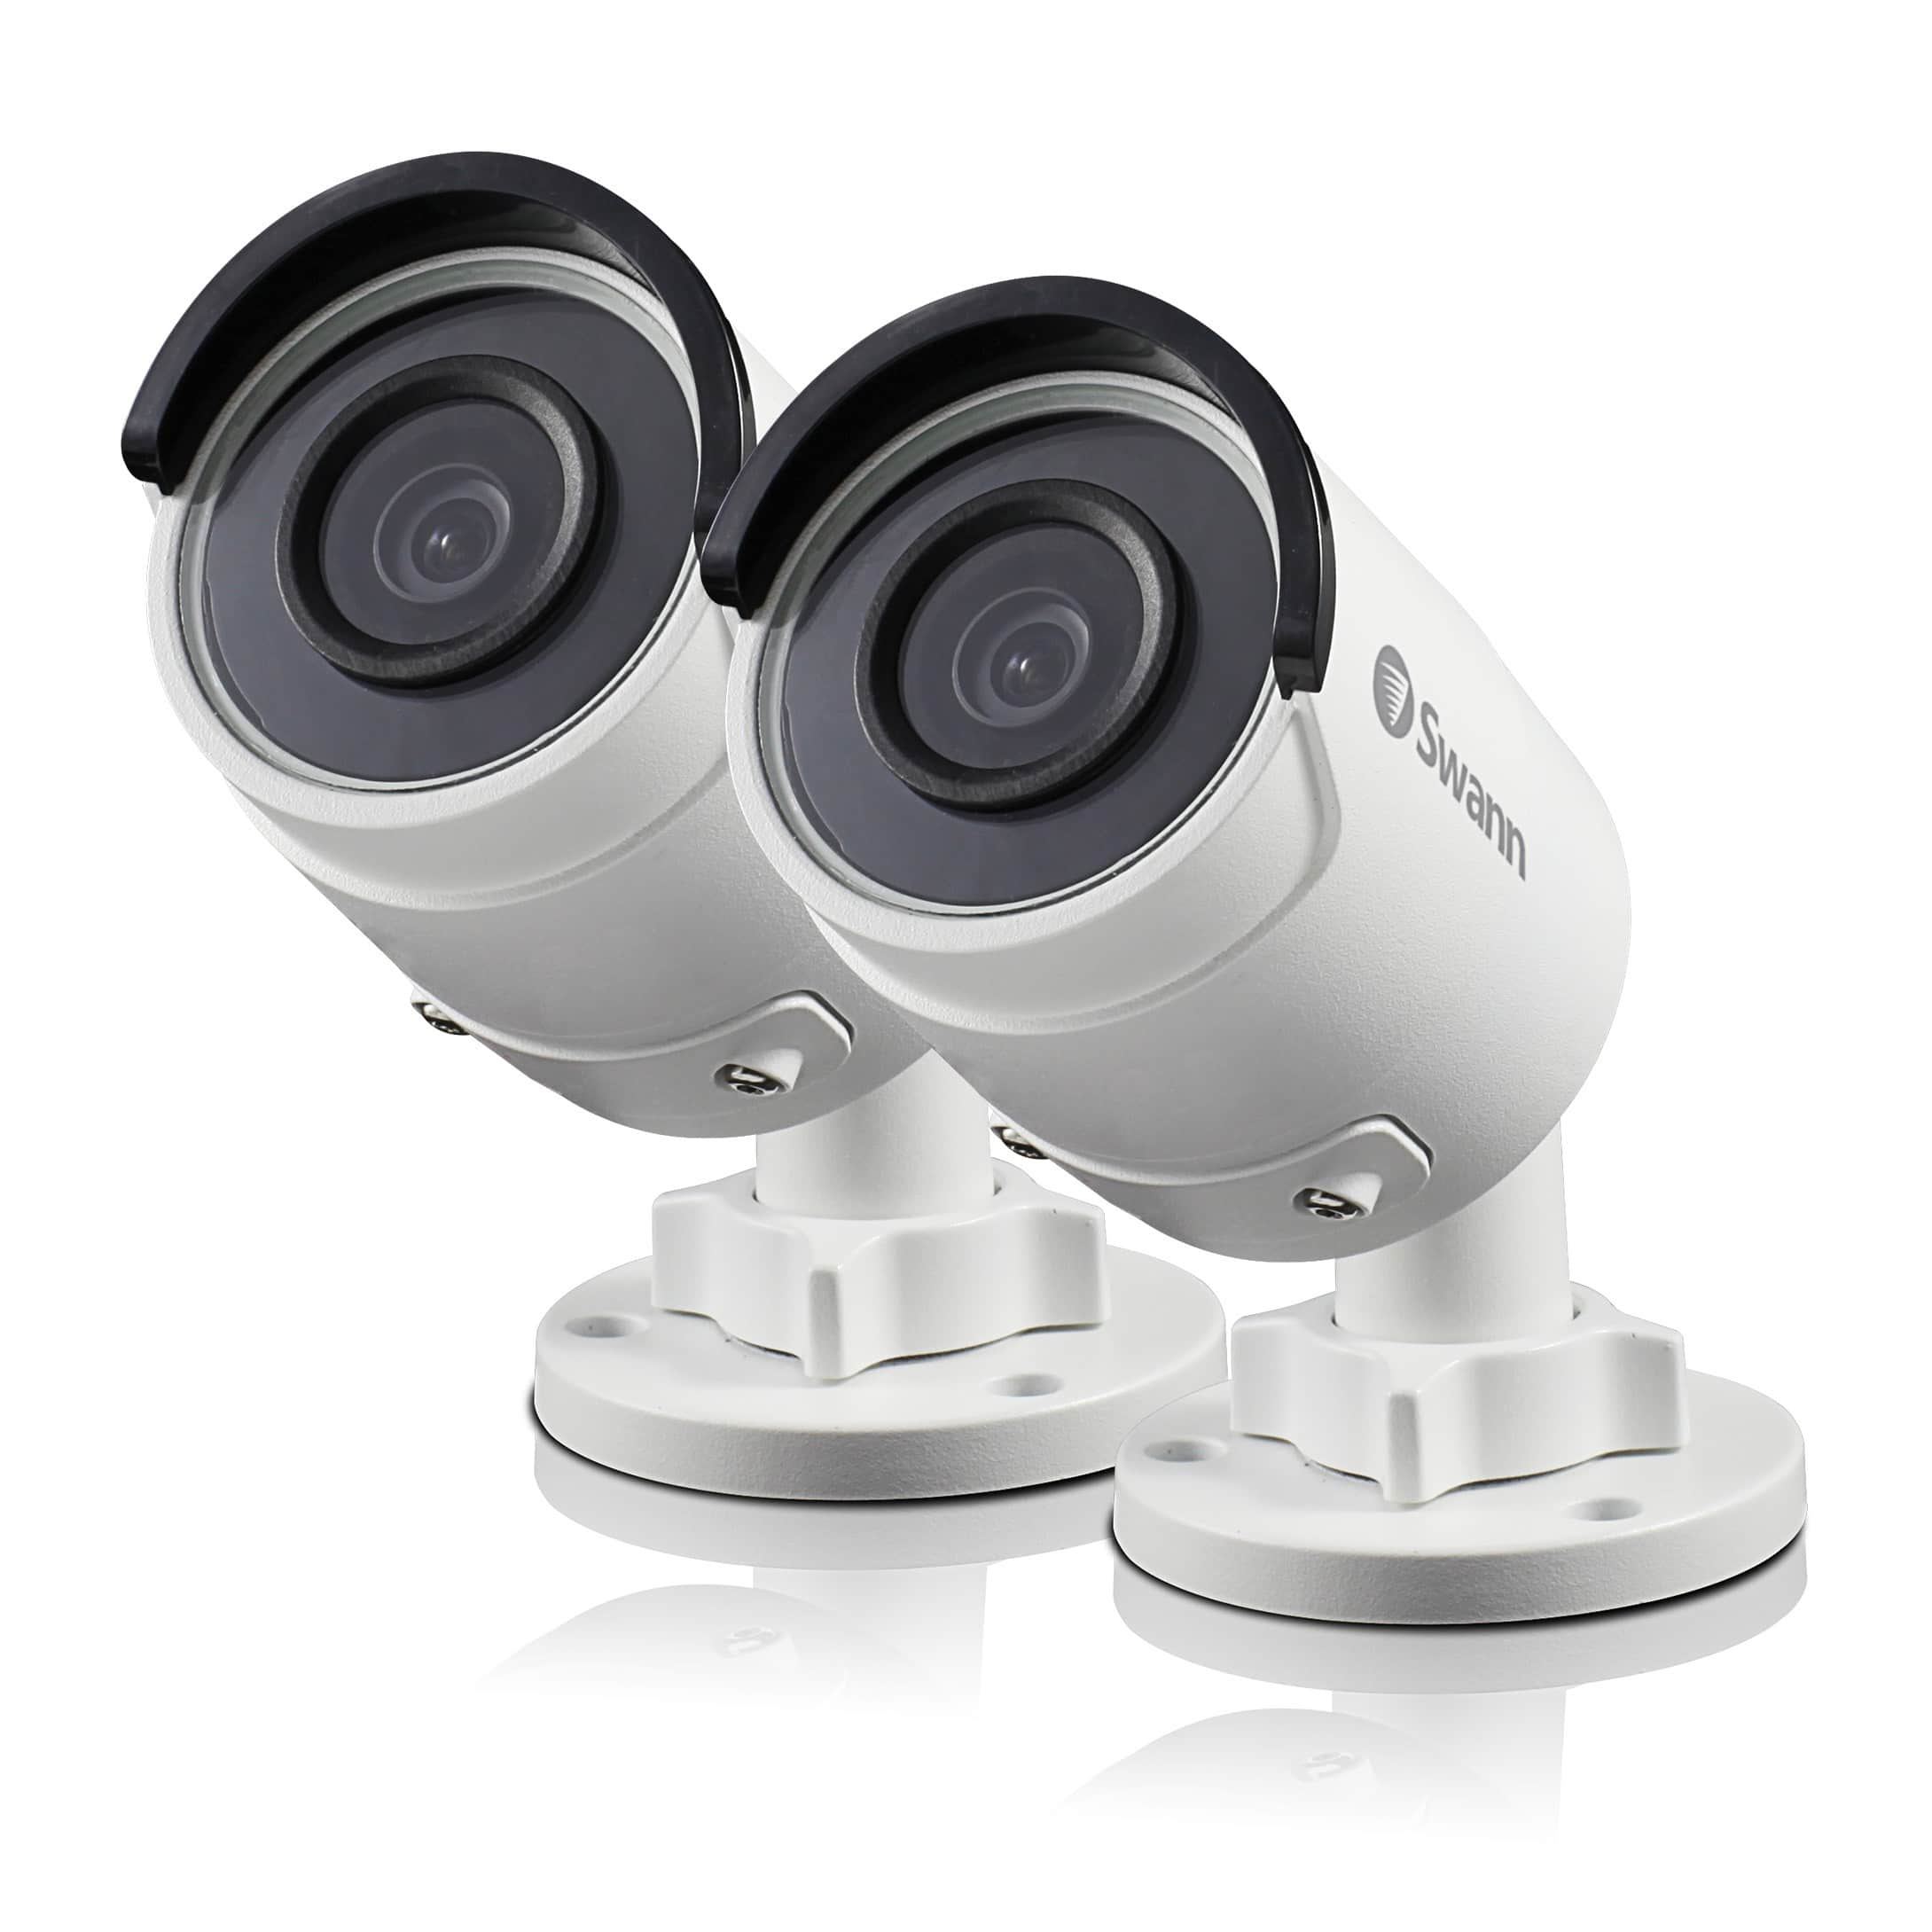 Swann ( Hikvision OEM ) 5MP IP PoE Bullet or Dome Security Camera 2